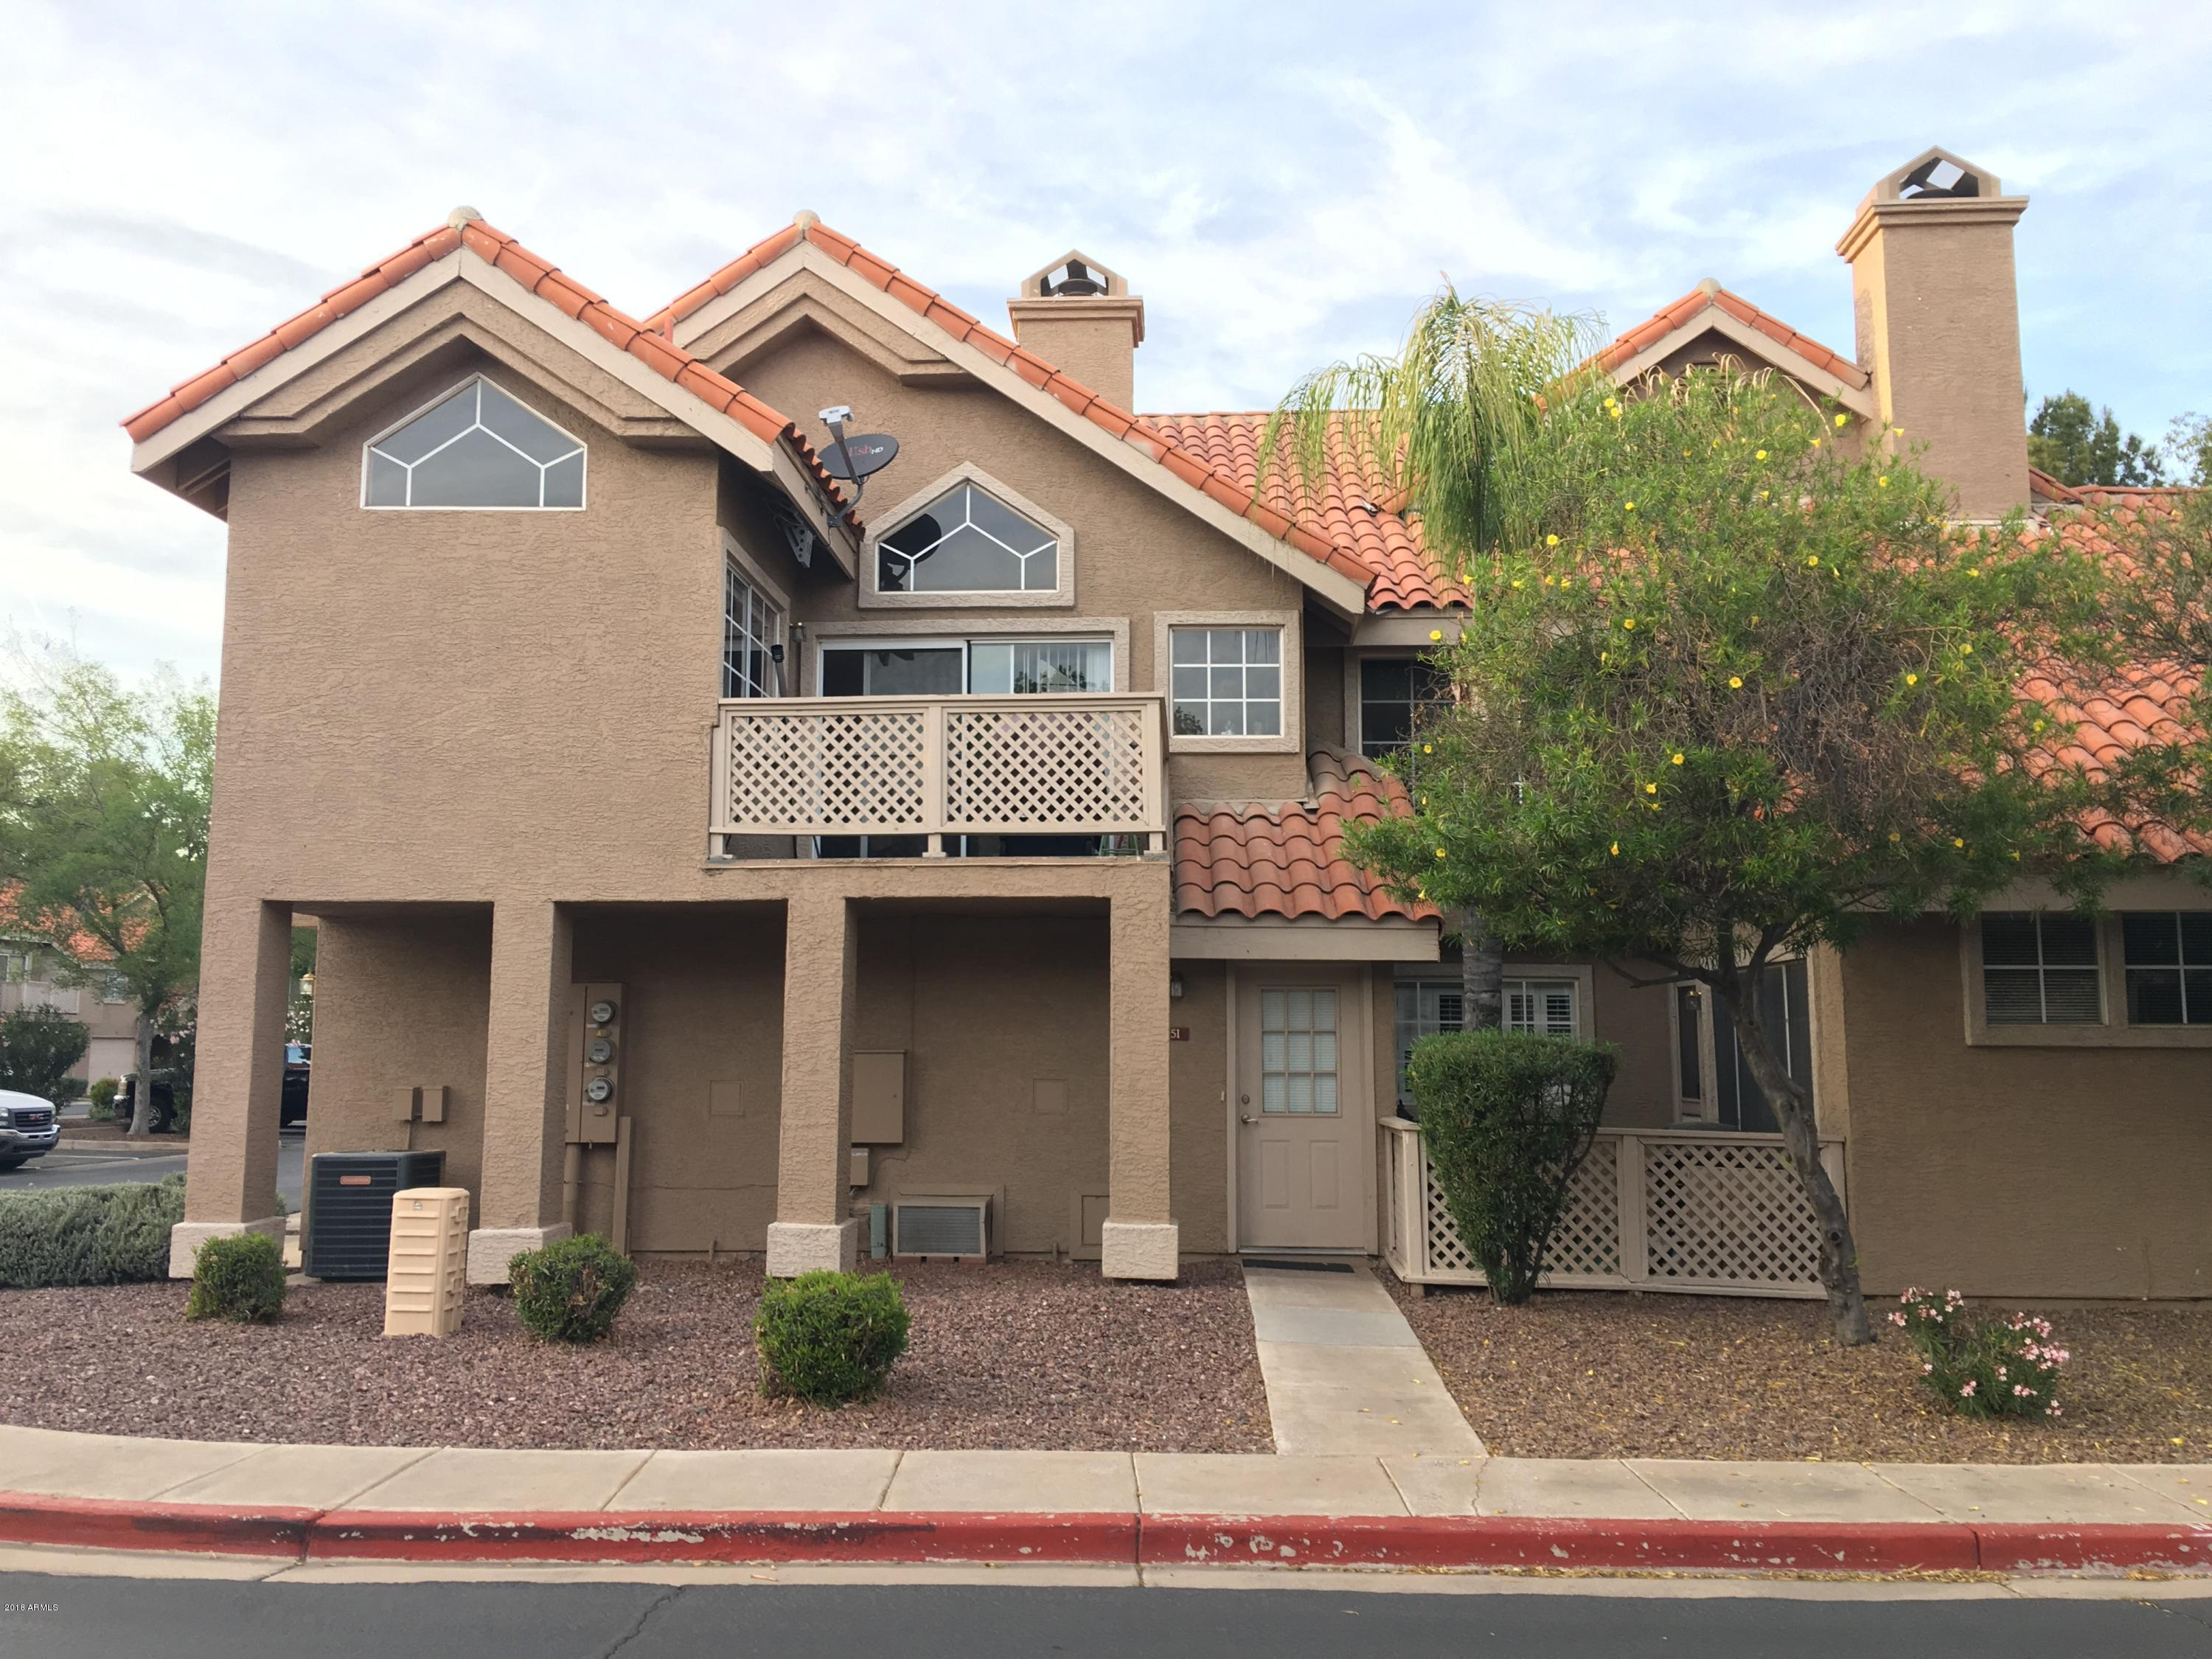 1633 E Lakeside Drive, Unit 51, Gilbert AZ 85234